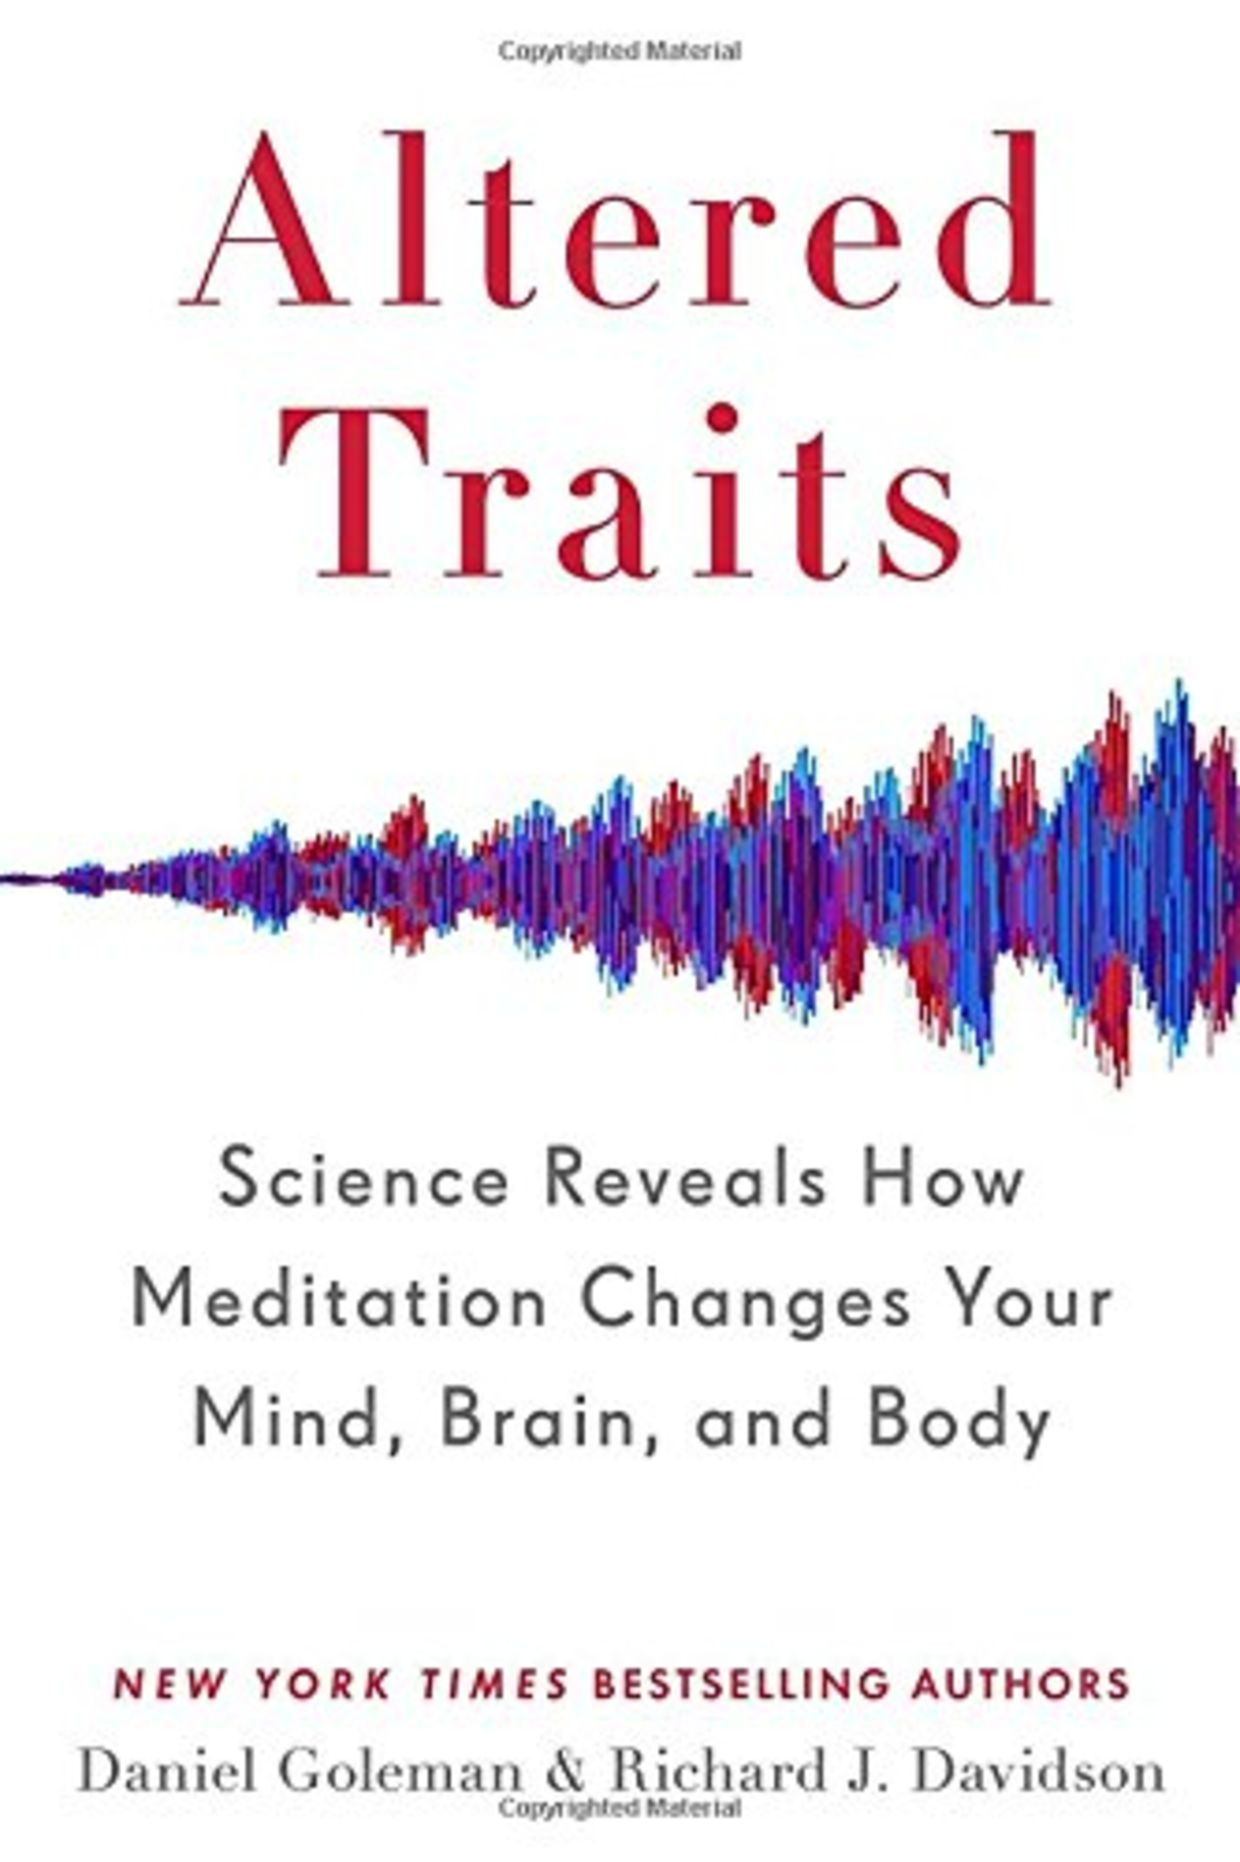 Altered Traits: Science Reveals How Meditation Changes Your Mind, Brain, and Body, by Daniel Goleman and Richard Davidson